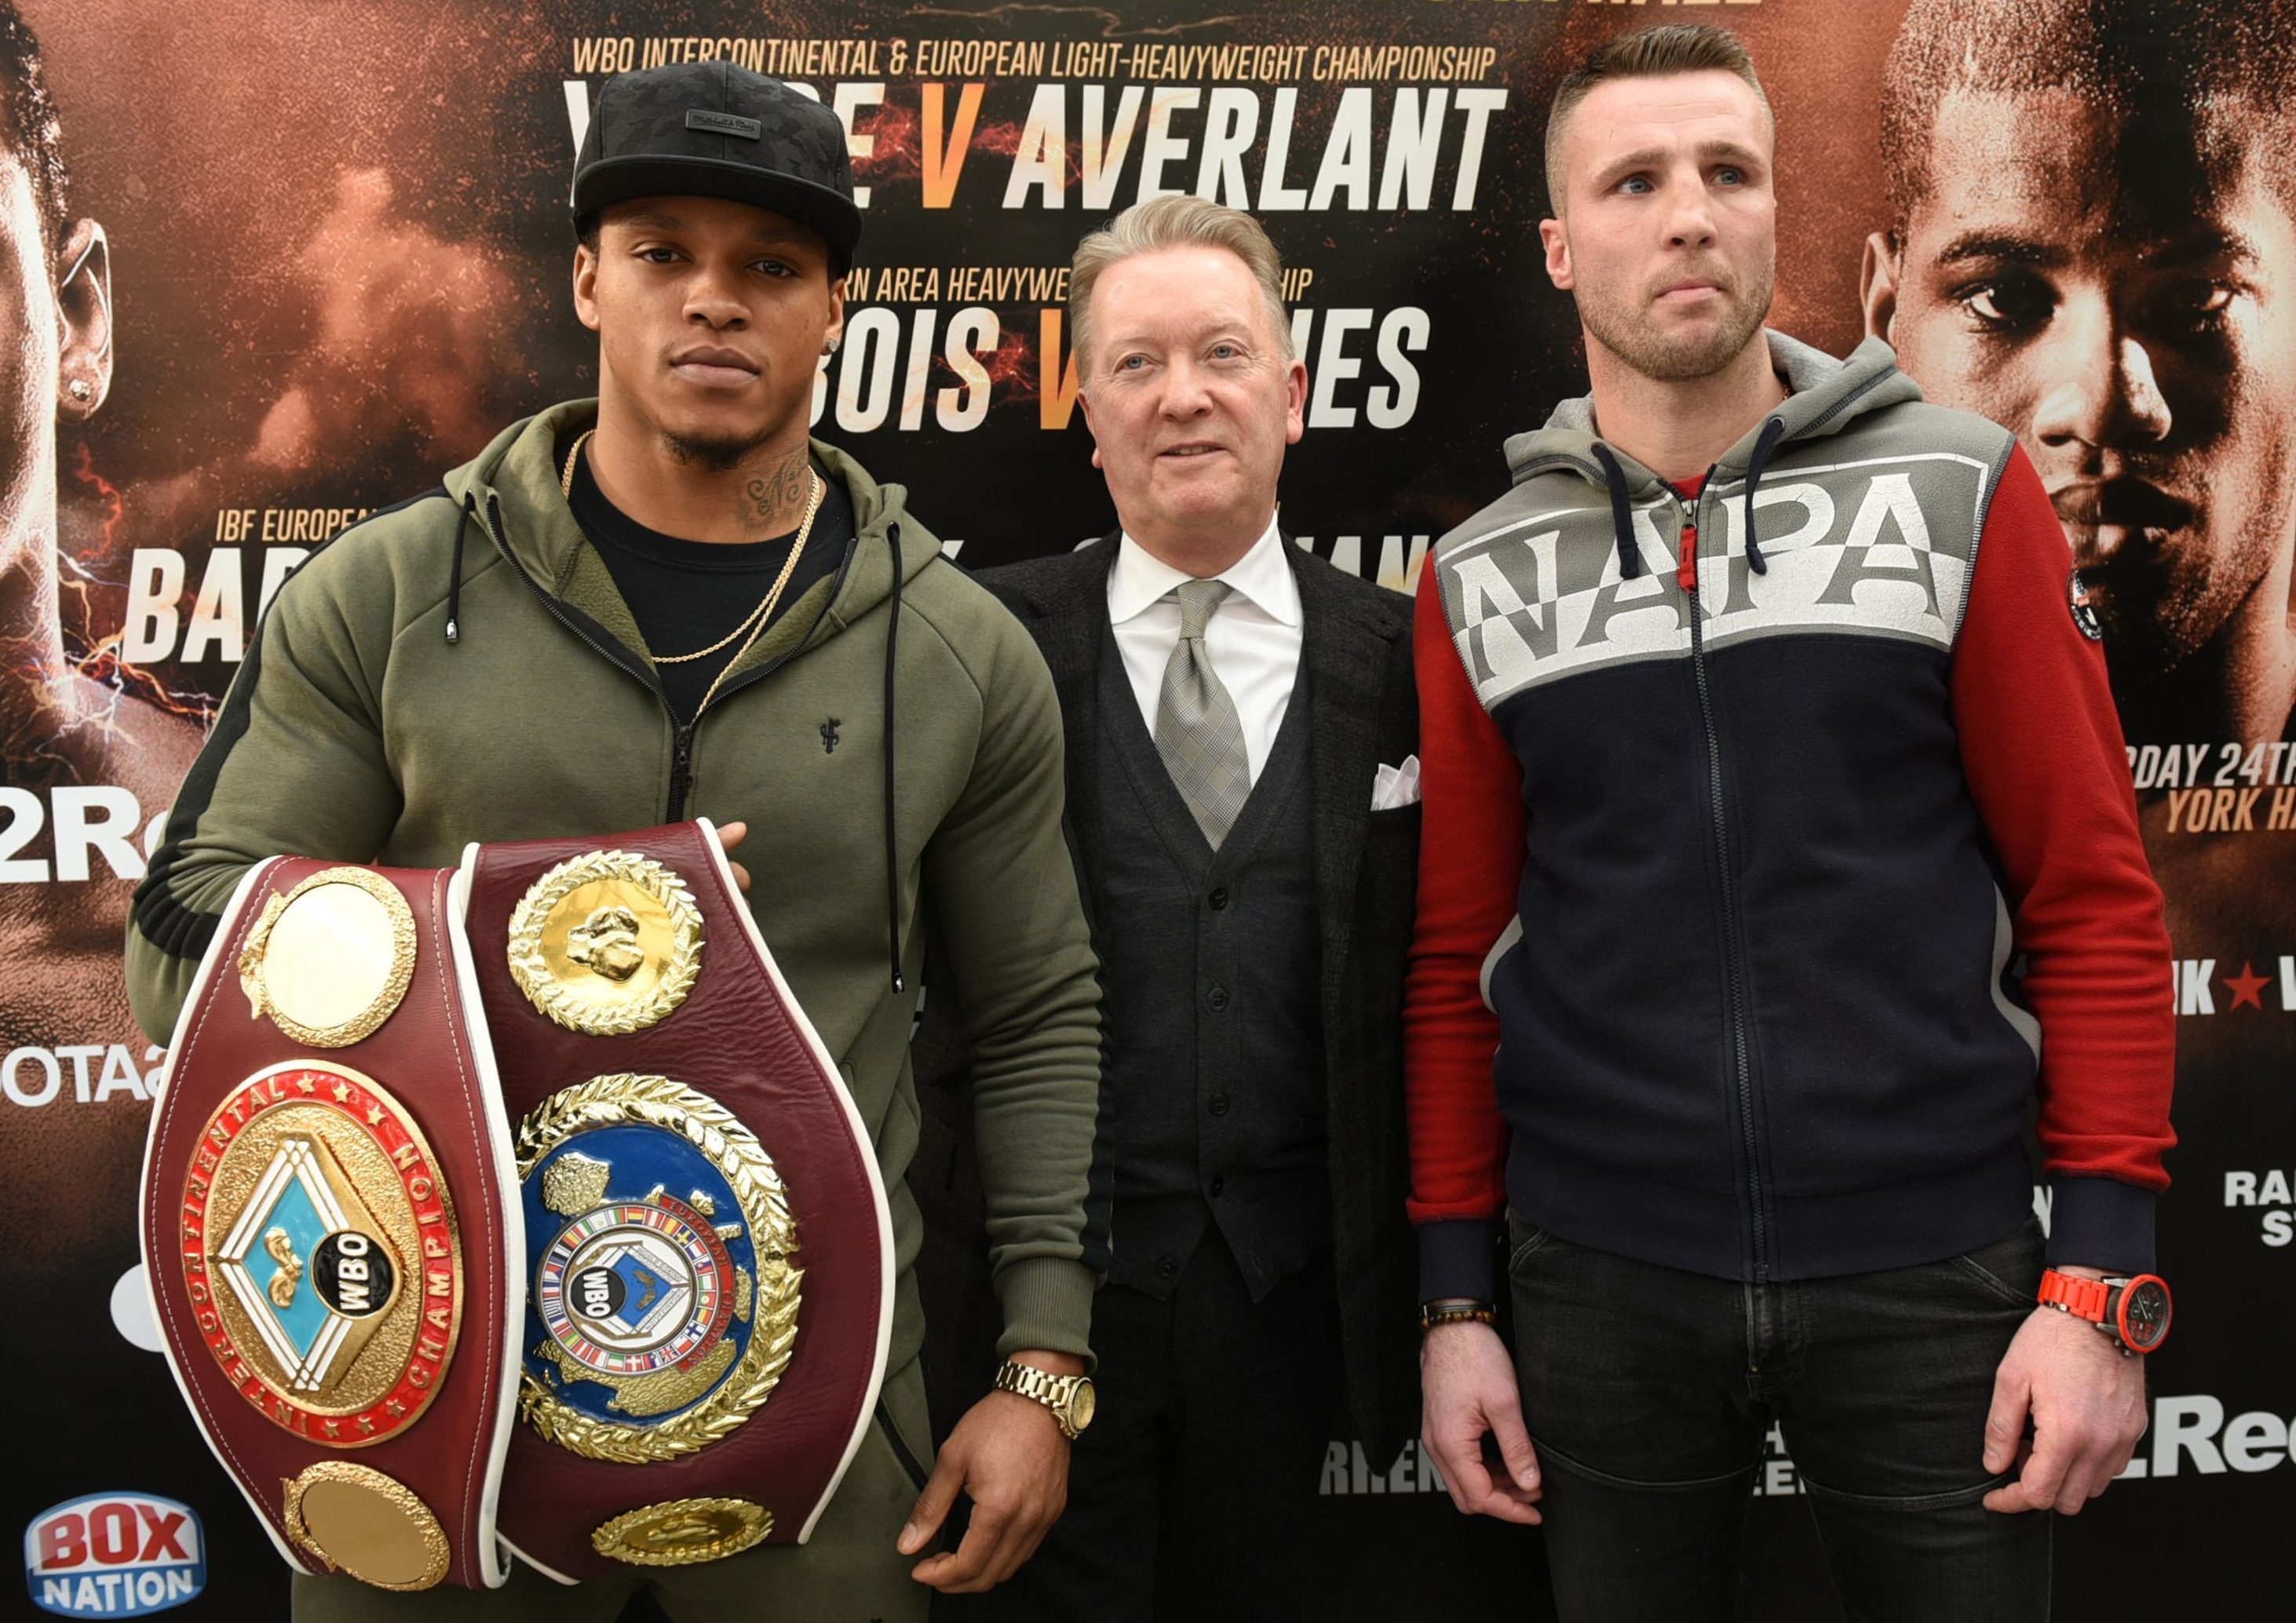 Anthony Yarde will make a European title defence against Frenchman Tony Averlant - with the latter having some problems at the pre-fight presser